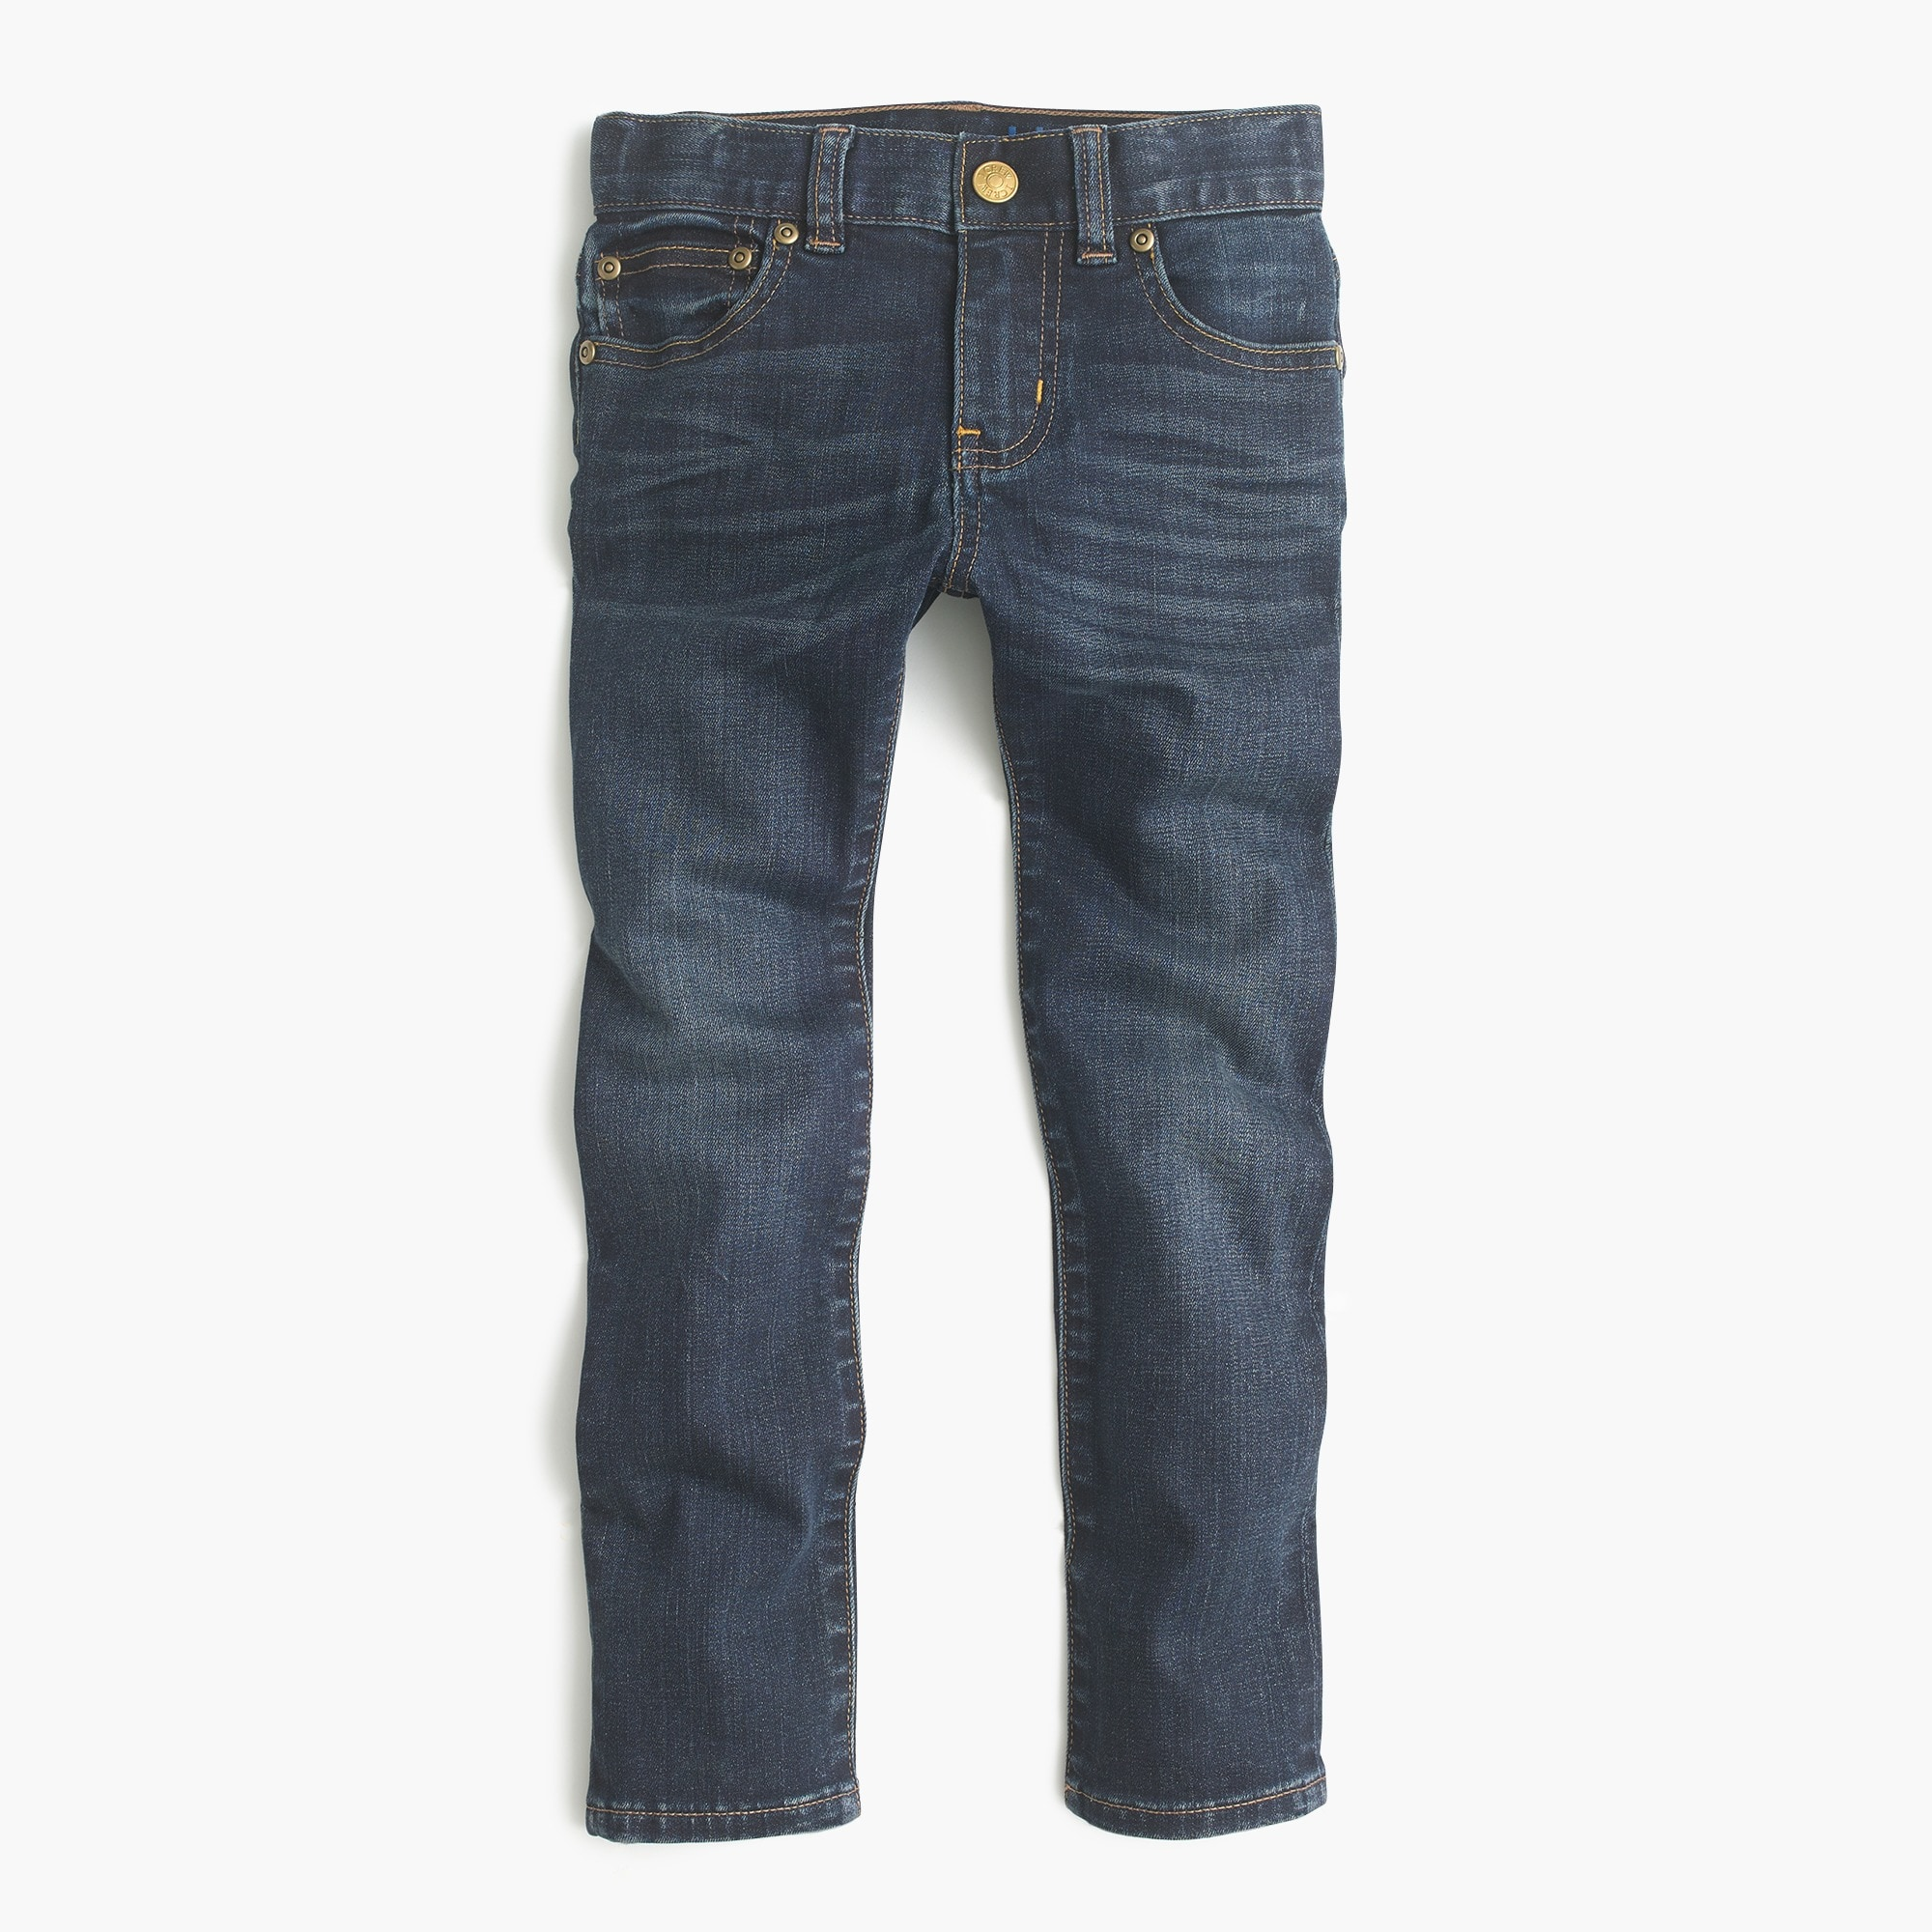 Boys' dark-wash jean in stretch skinny fit